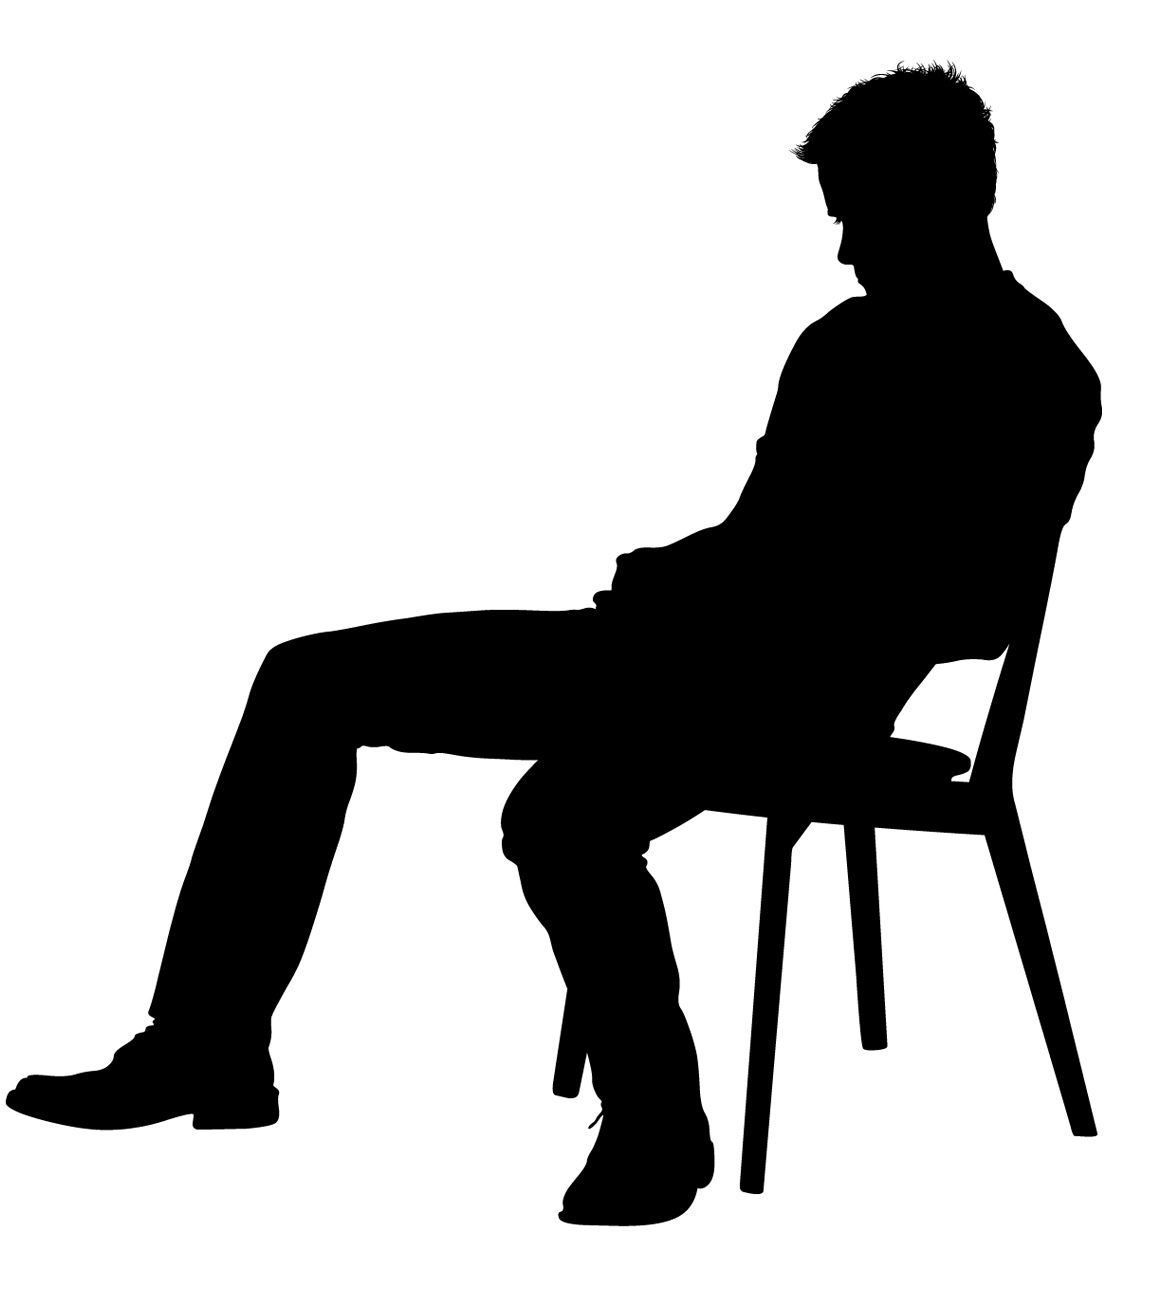 silhouette of a person sitting people silhouette sitting at getdrawings free download of person a sitting silhouette